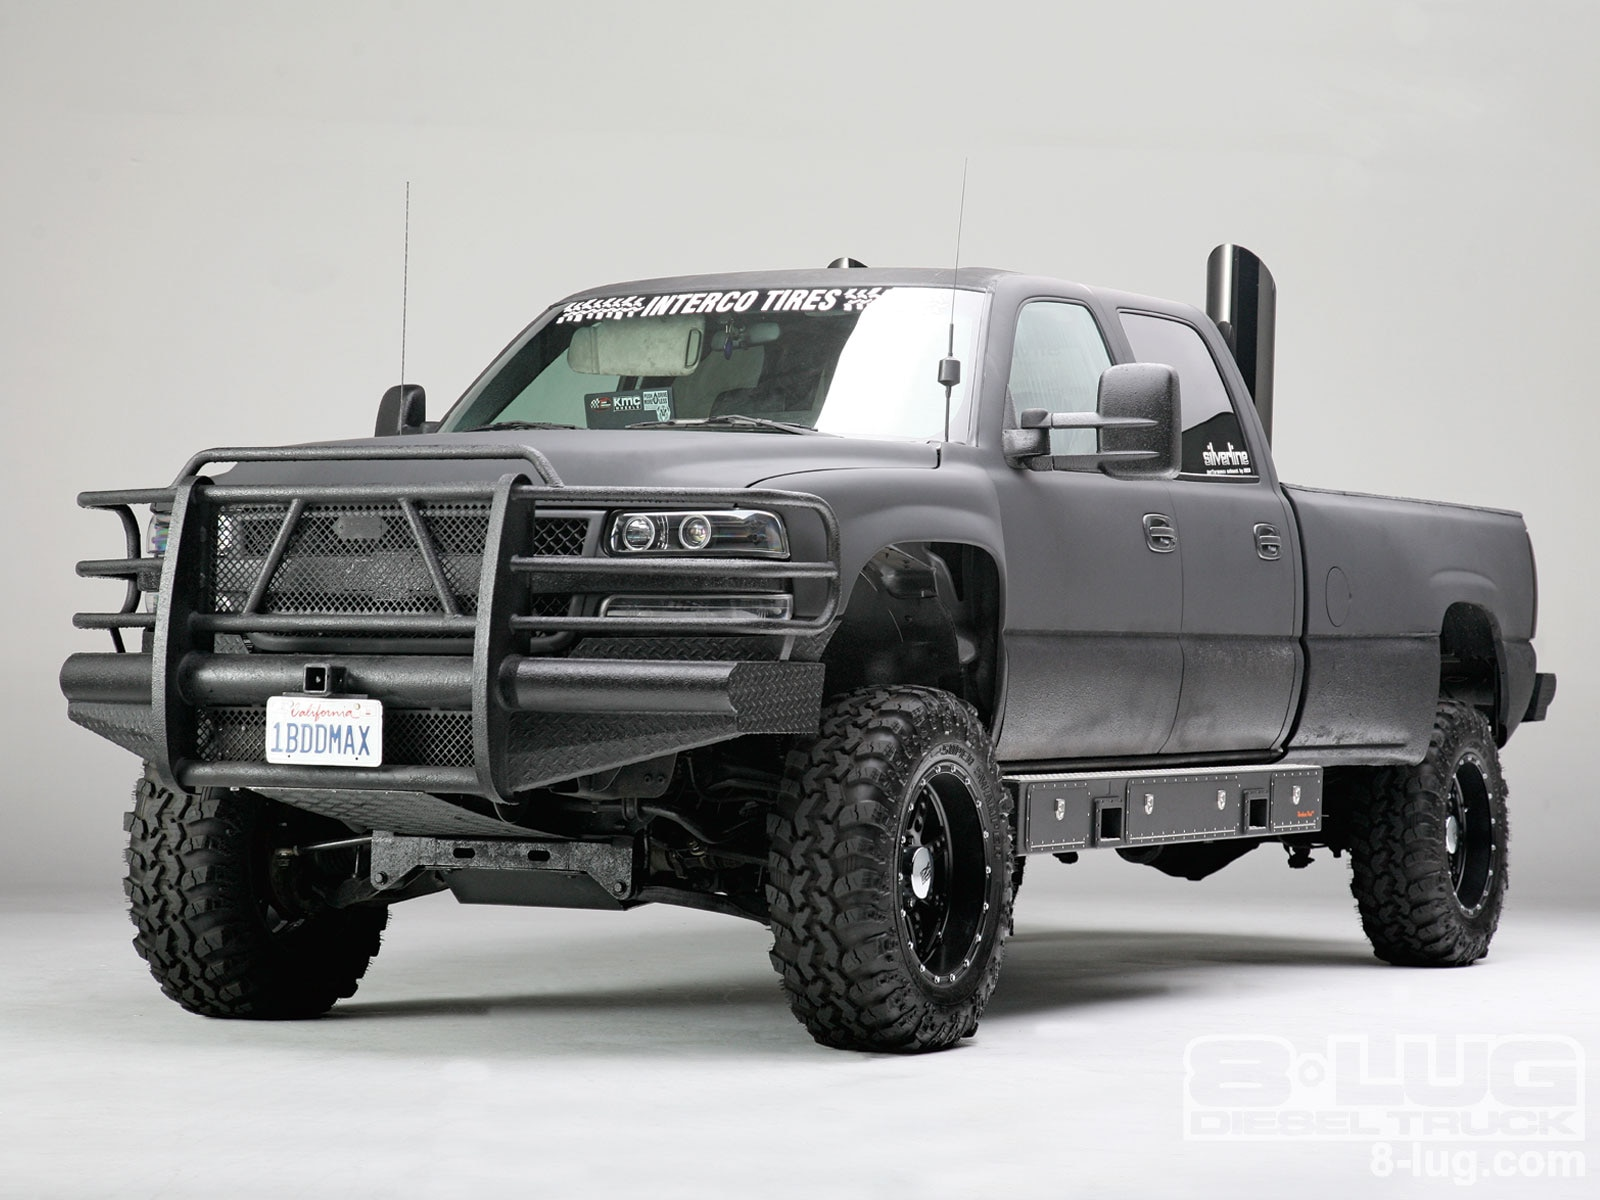 2002 chevy silverado 2500hd crew cab custom diesel truck 8 lug magazine. Black Bedroom Furniture Sets. Home Design Ideas